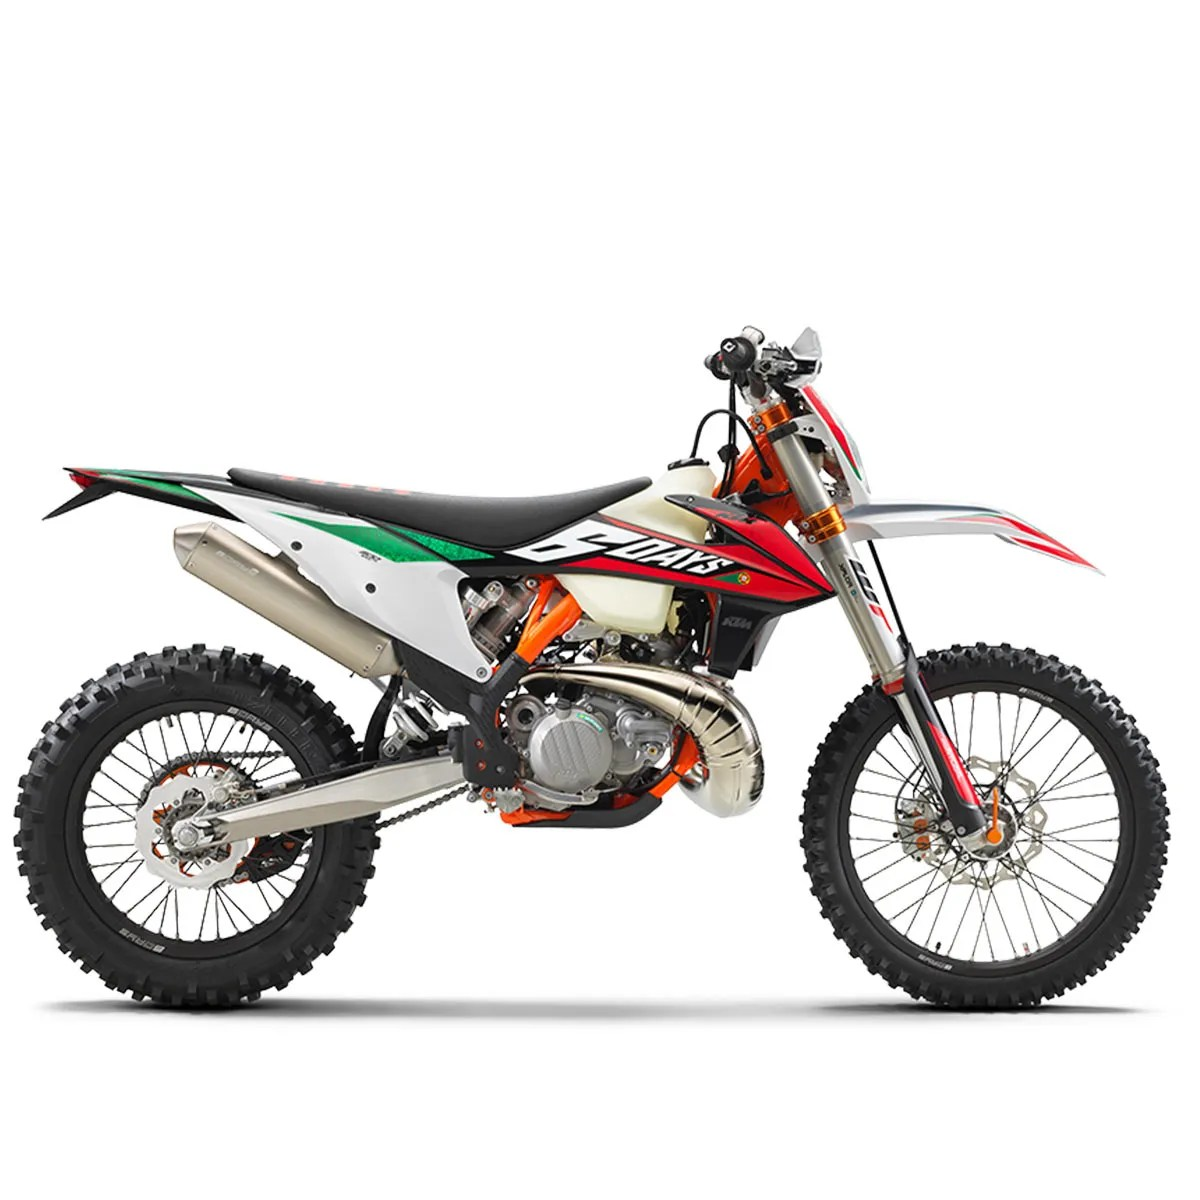 KTM-300-EXC-TPI-SIX-DAYS-2020